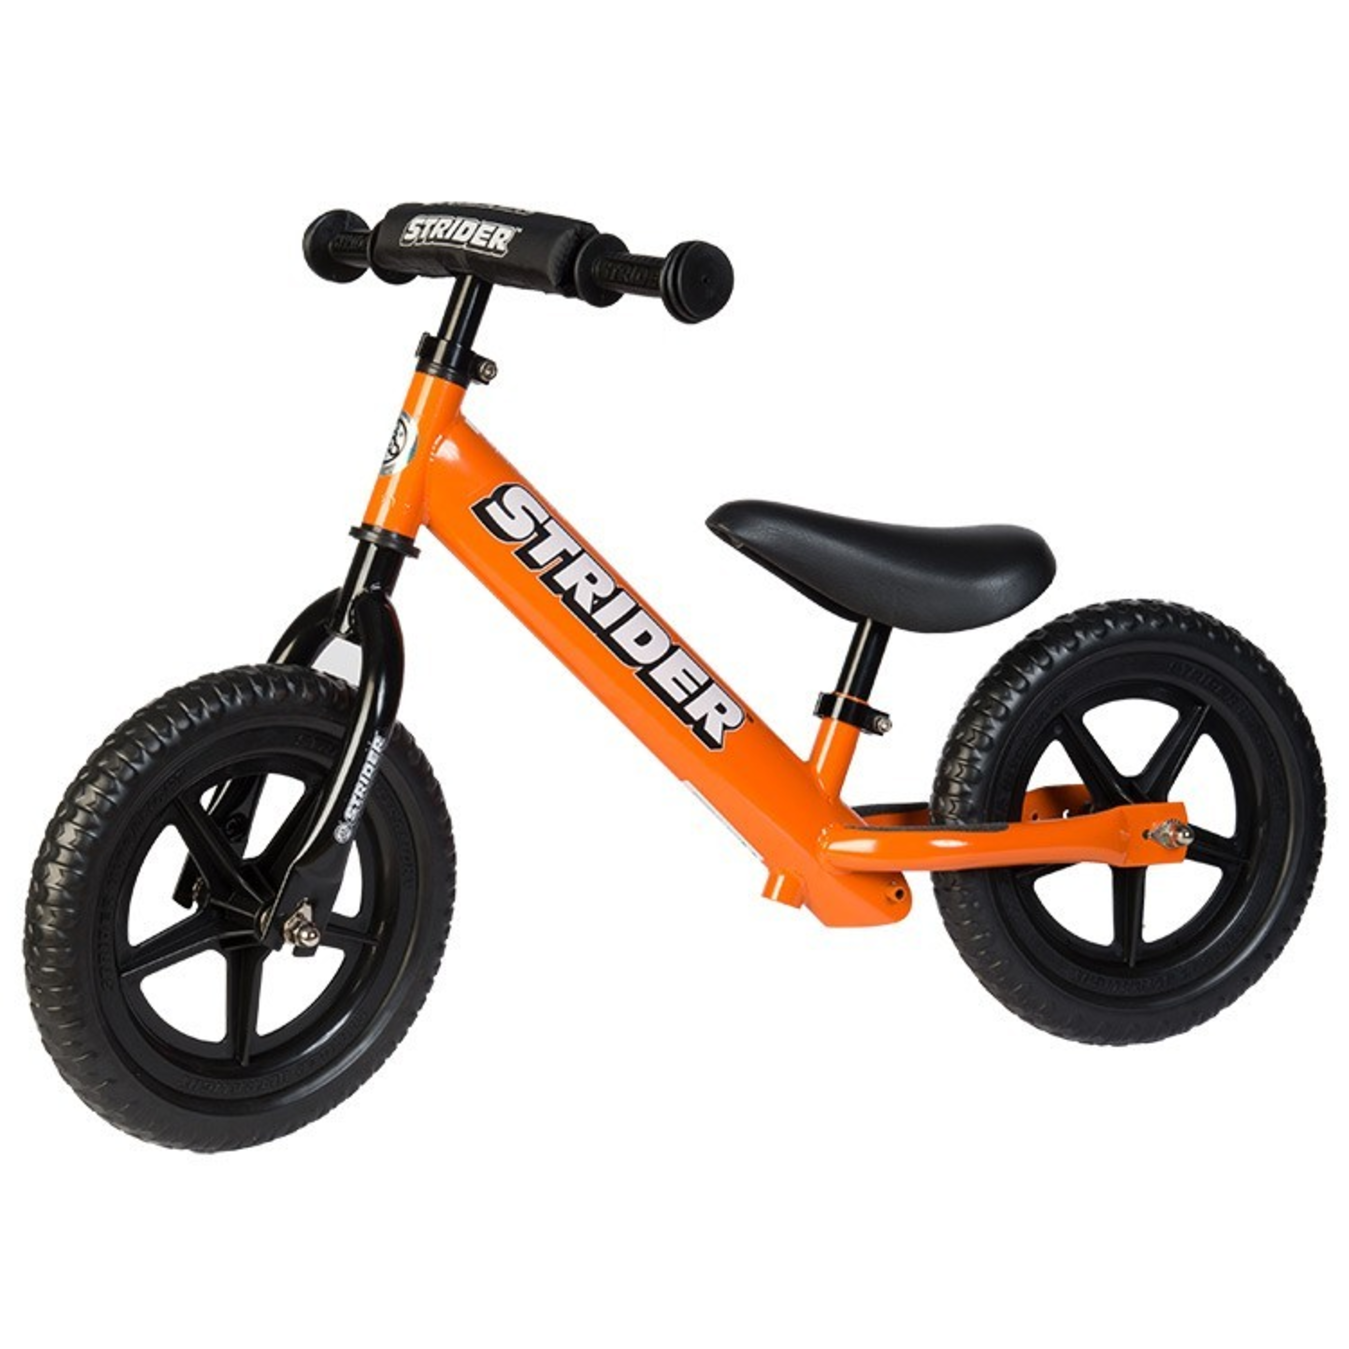 Беговел Беговел STRIDER STRIDER 12 Sport Orange-bigphoto